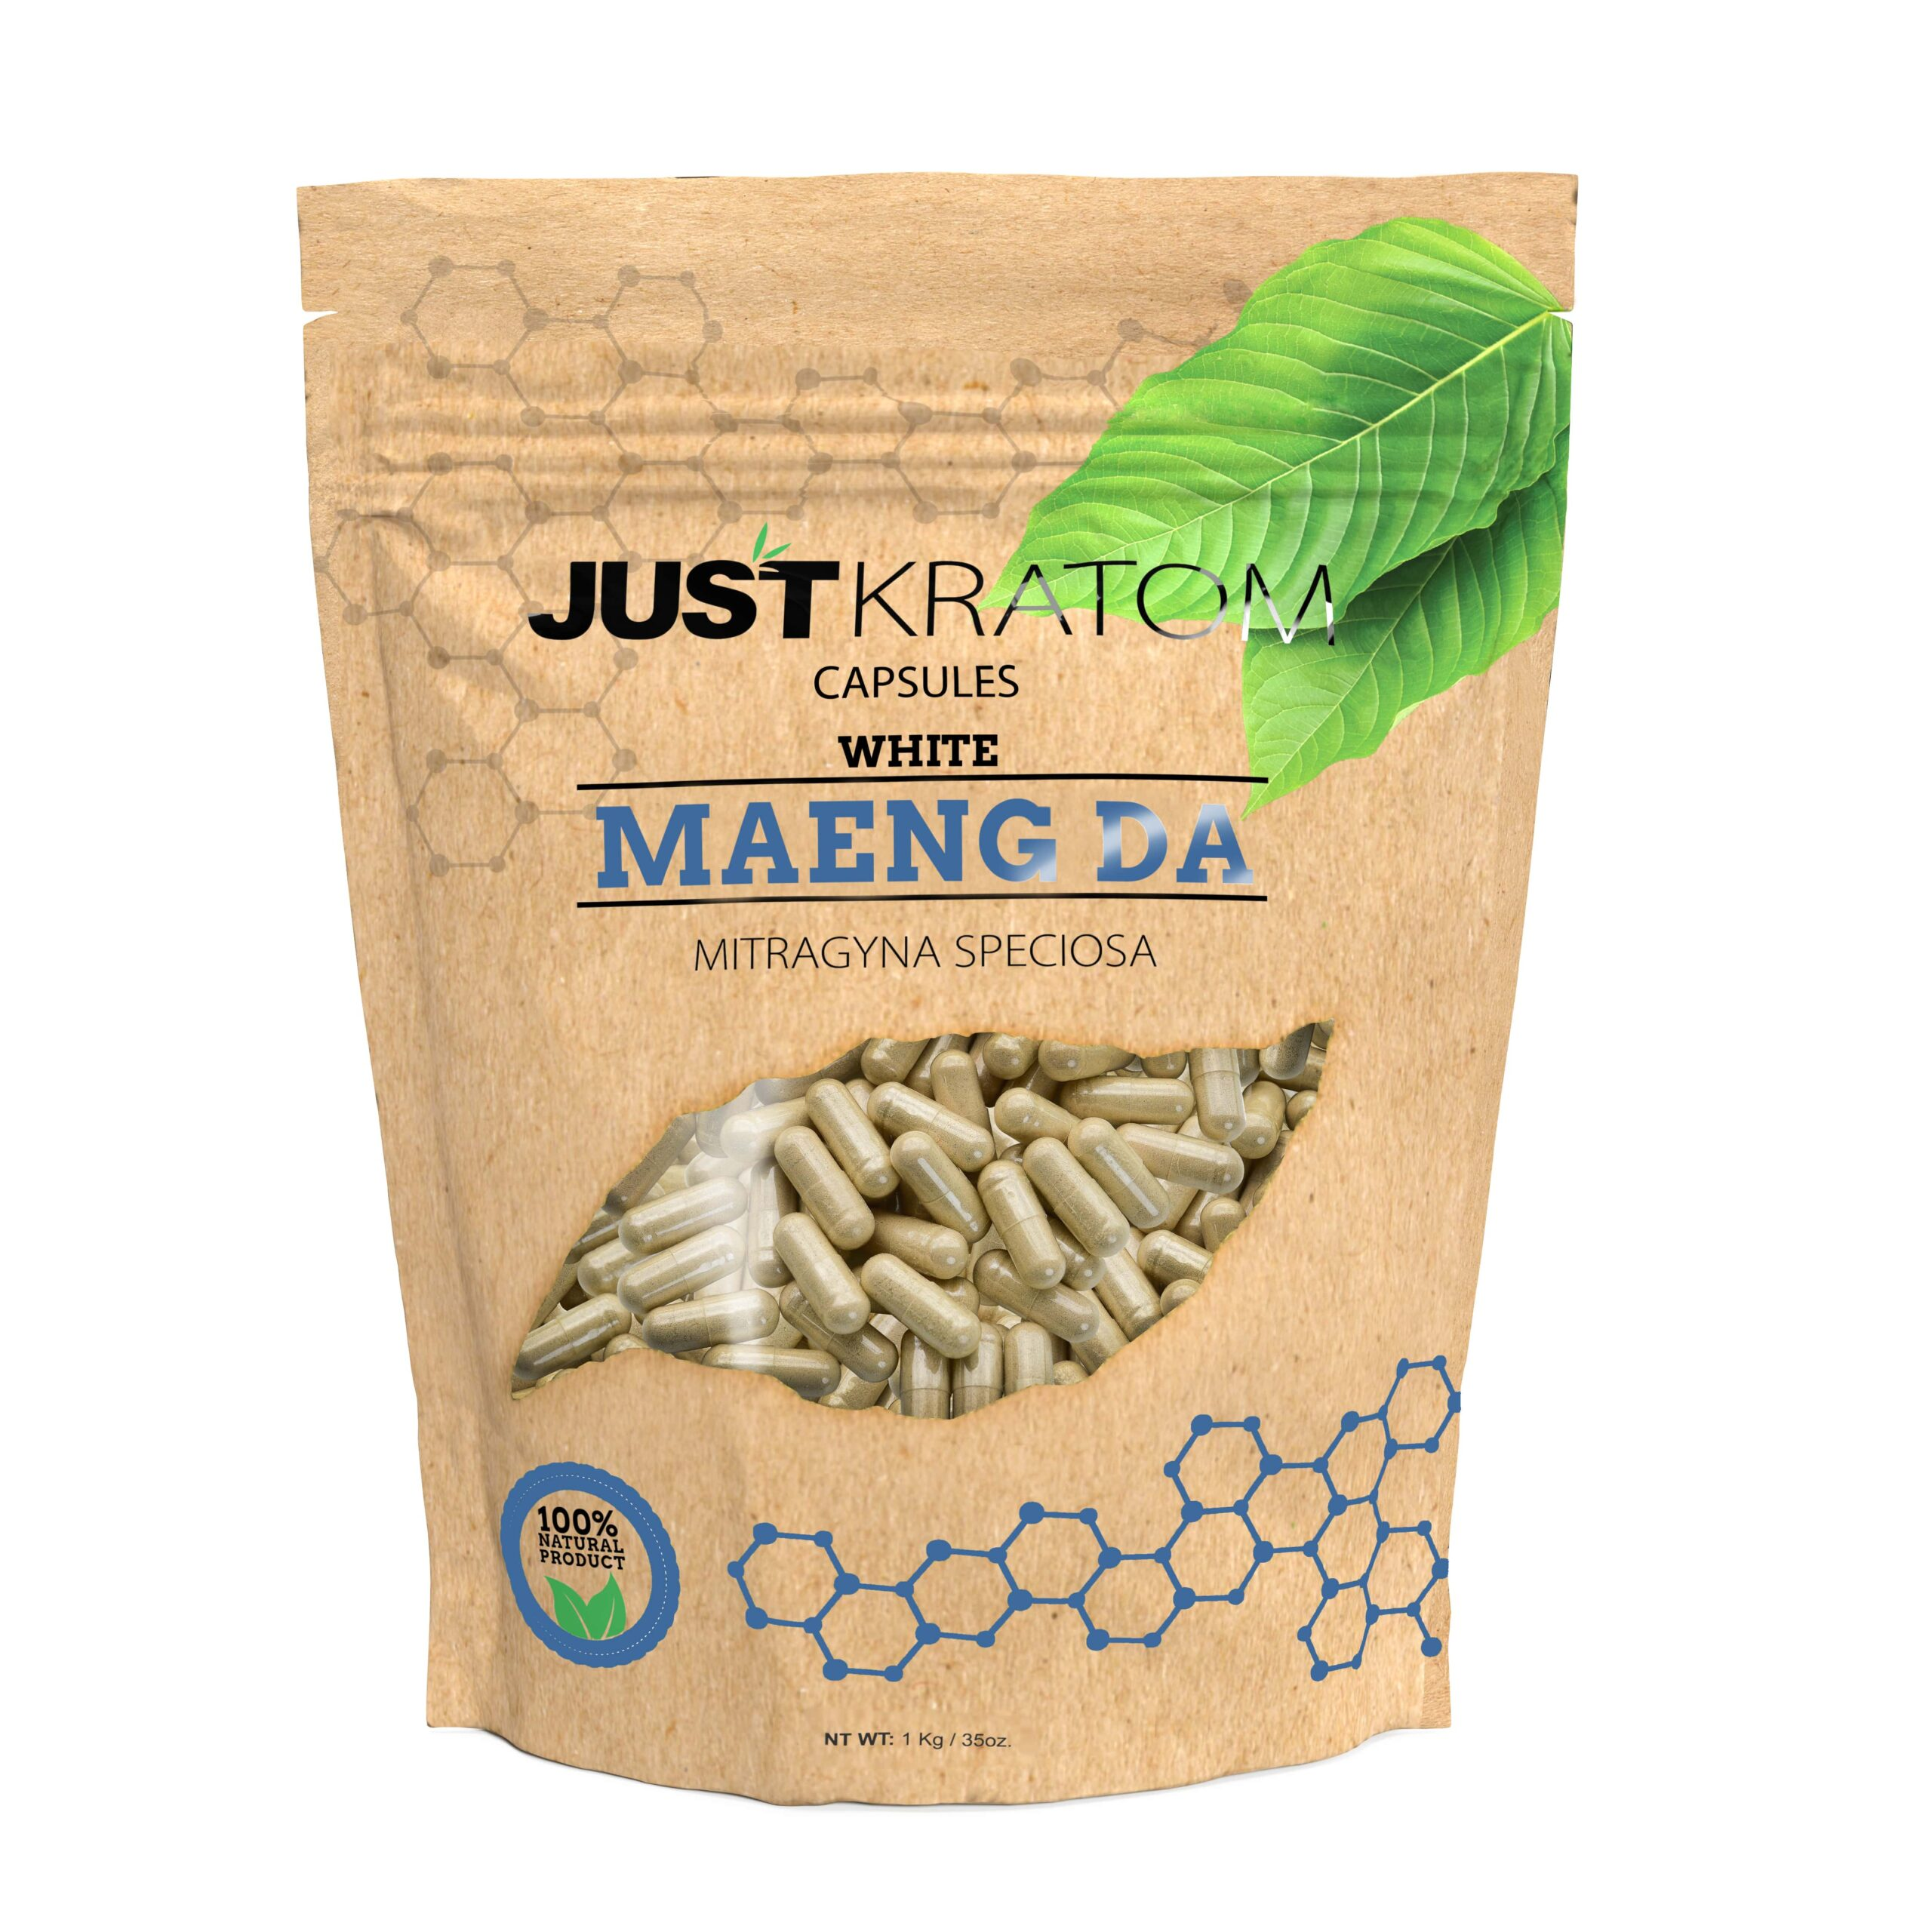 How Long Does Kratom Nausea Last